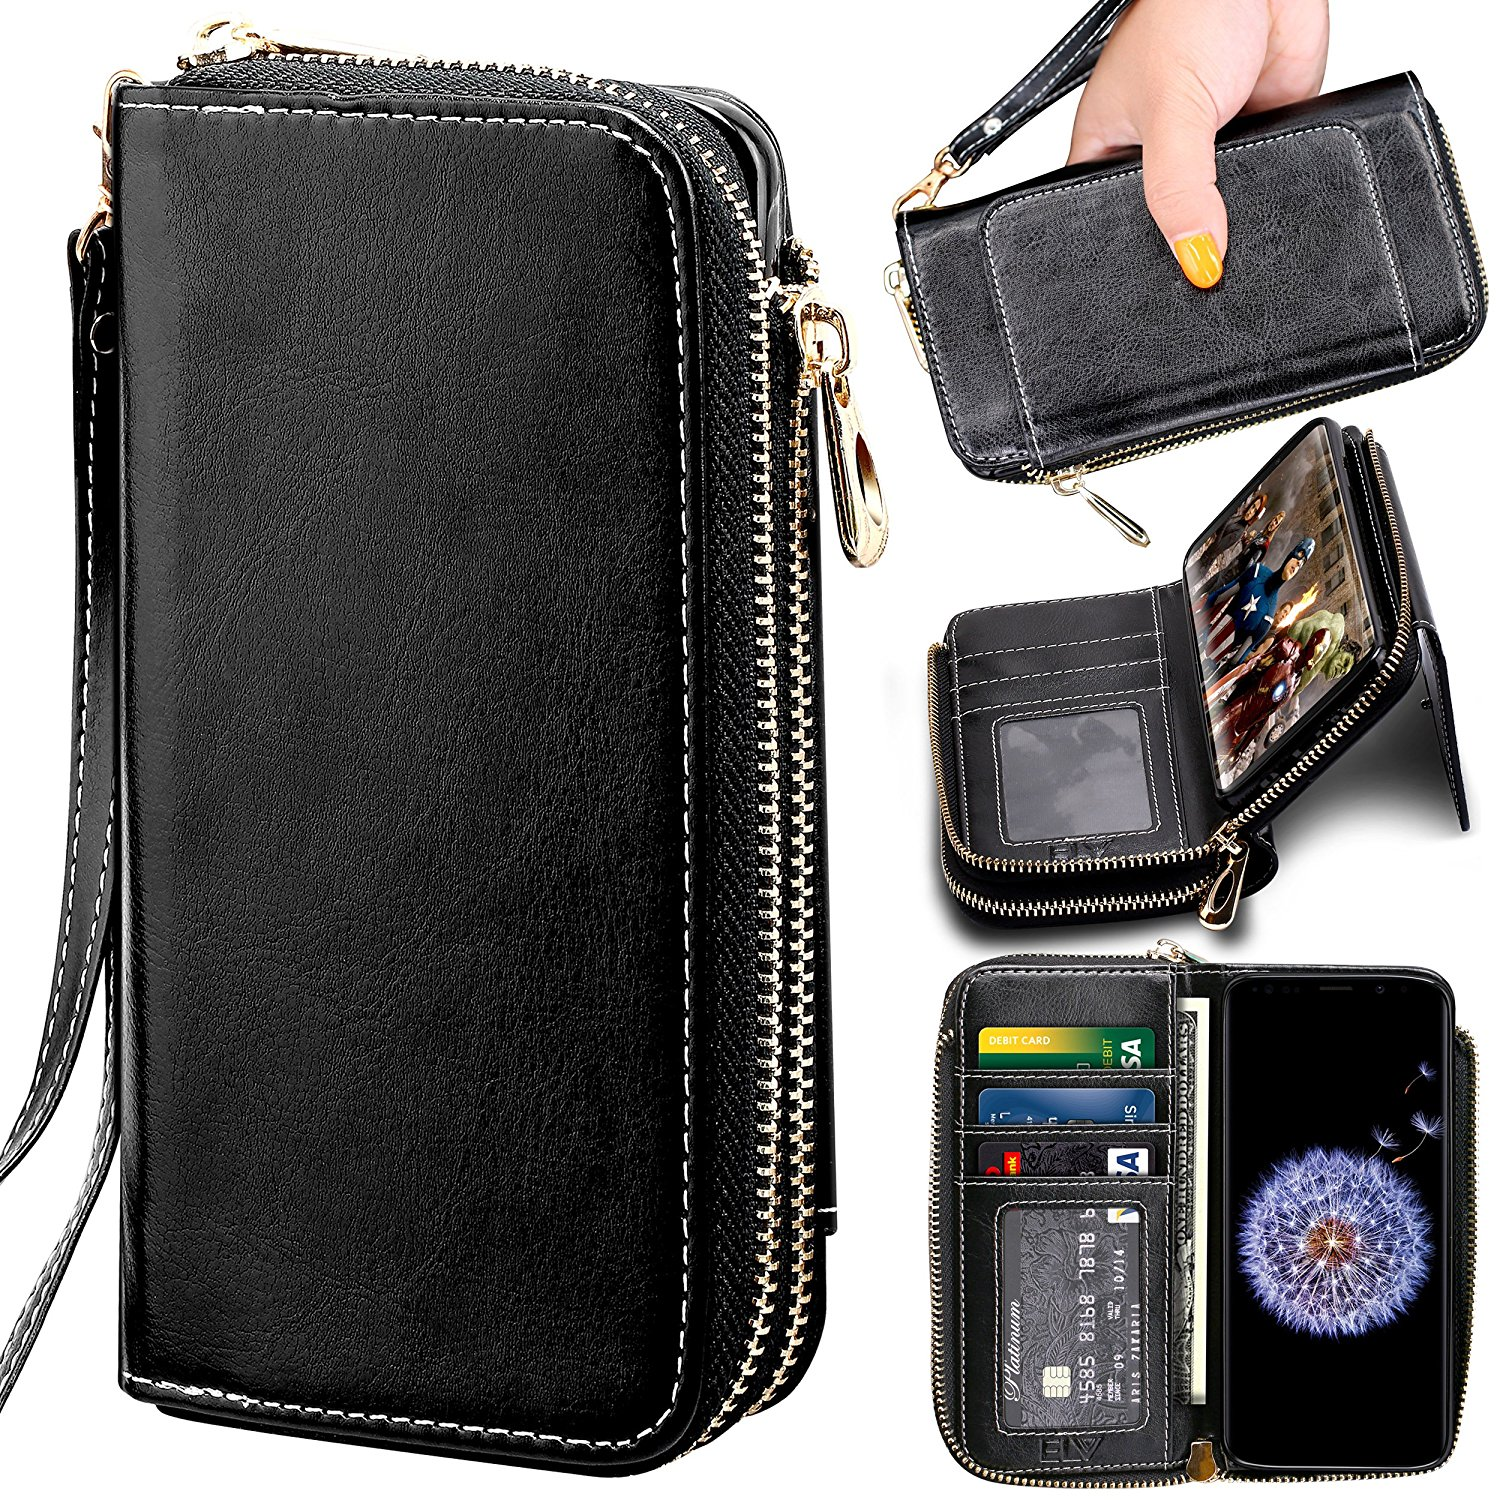 Samsung galaxy S9 PLUS Wallet Case , ELV [PU Leather] Premium Detachable 2in1 Folio Wallet Purse Samsung S9 PLUS Credit Card Flip Case Protective with Card Slots, Stand and Magnetic Closure